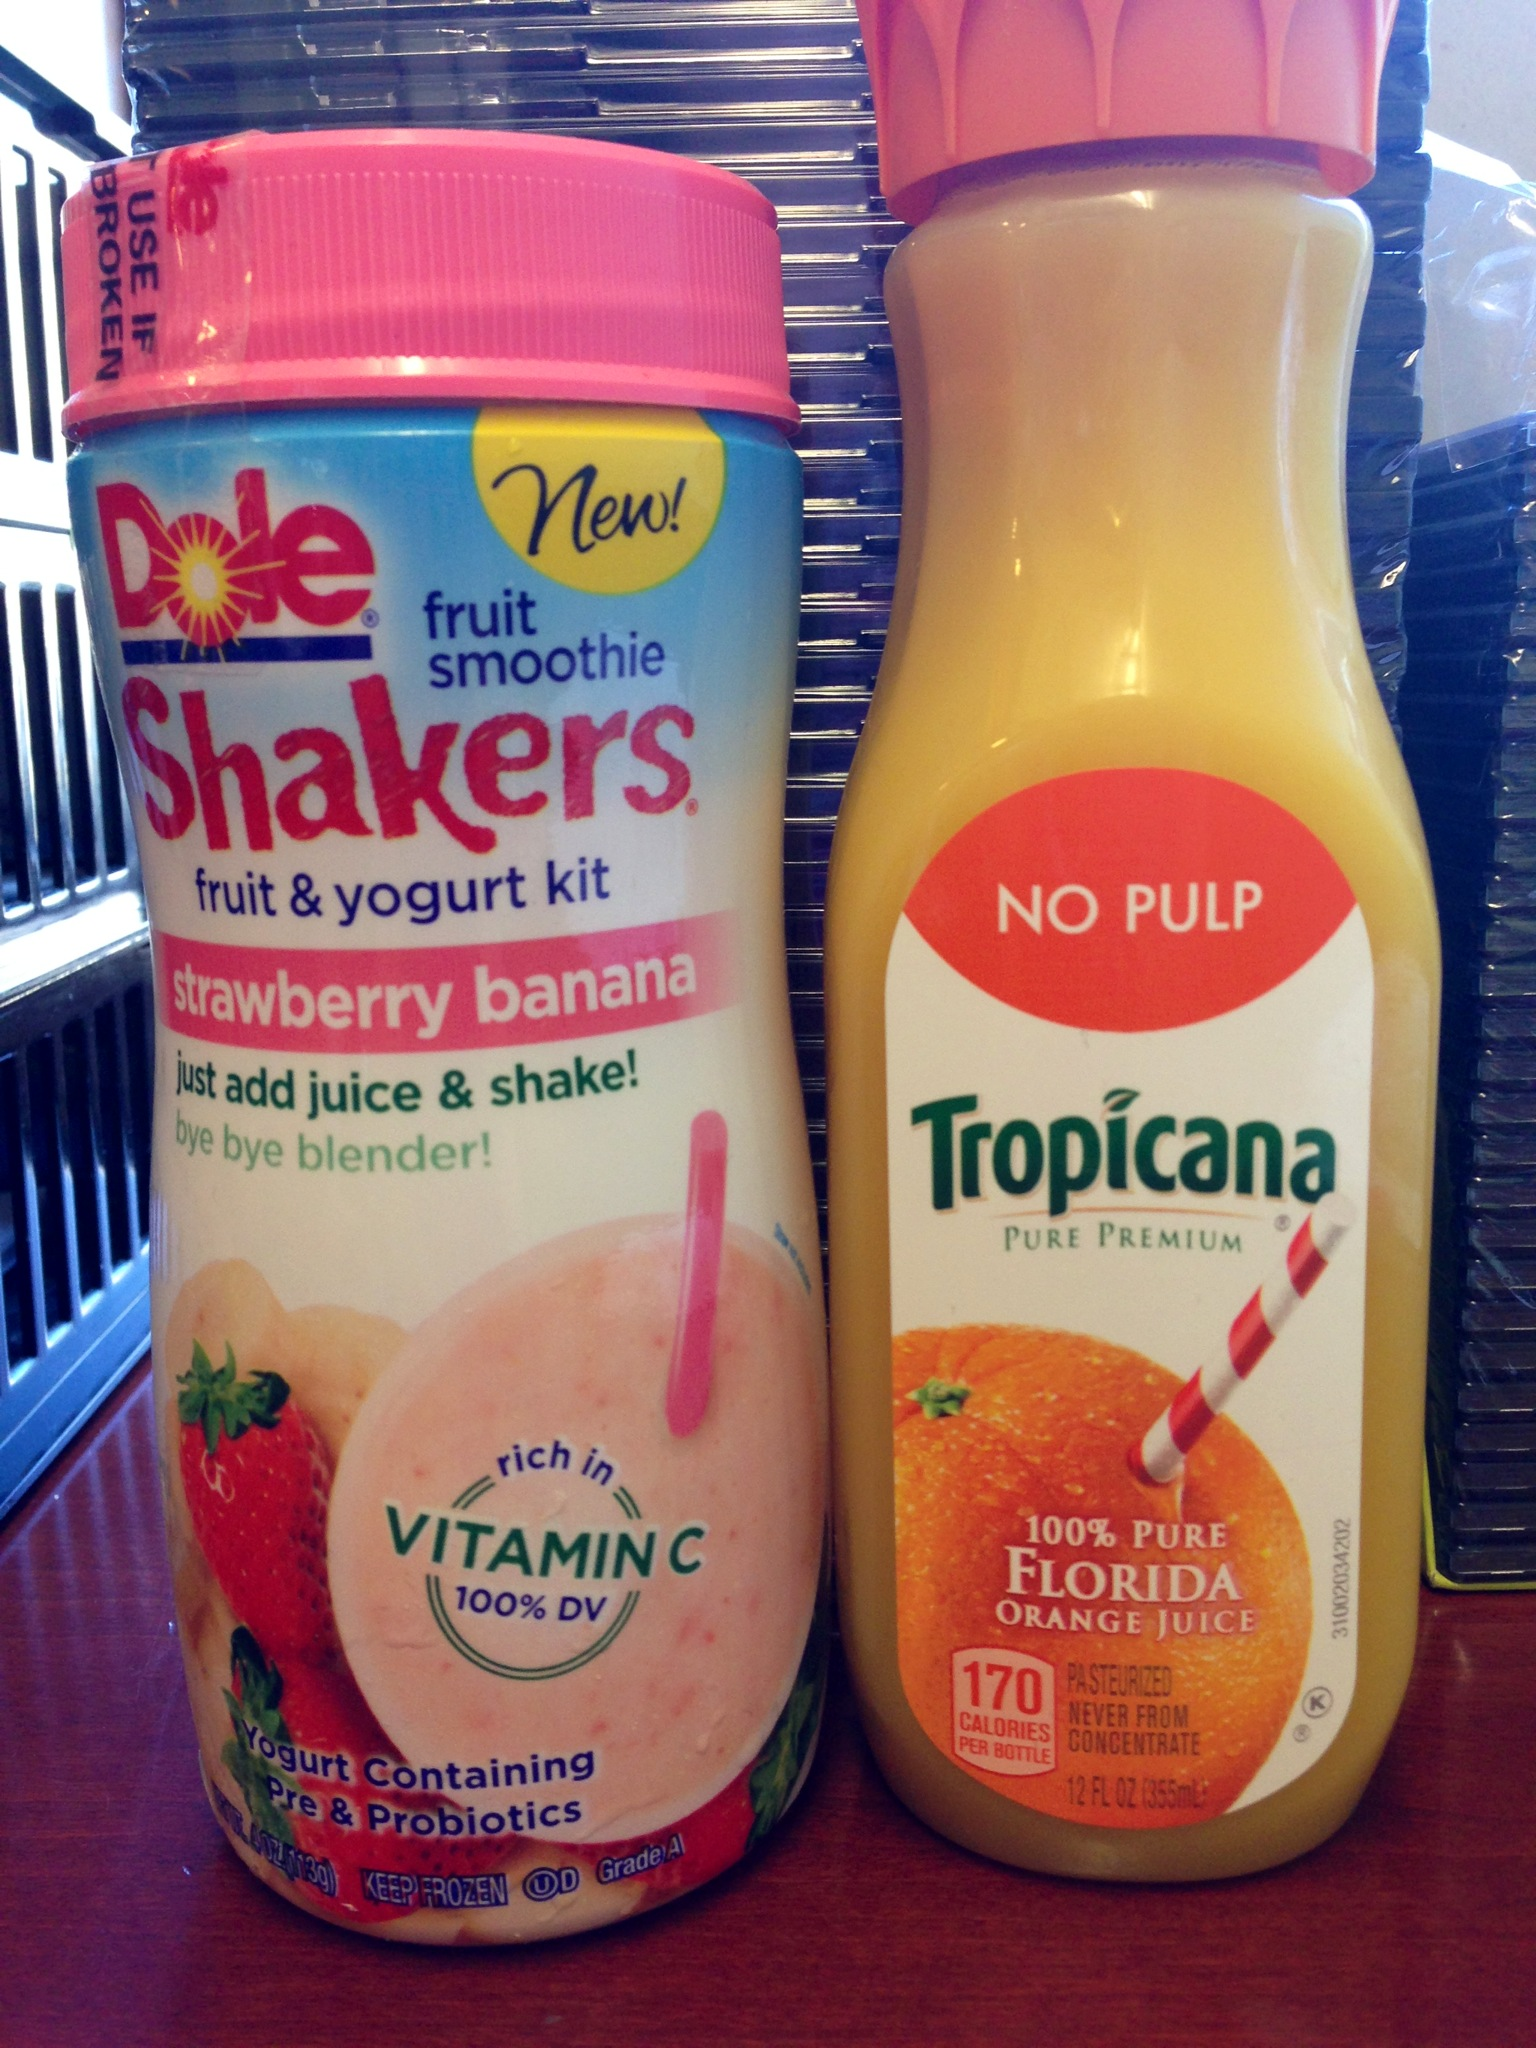 Dole Fruit Smoothie Shakers Pearls And Paris